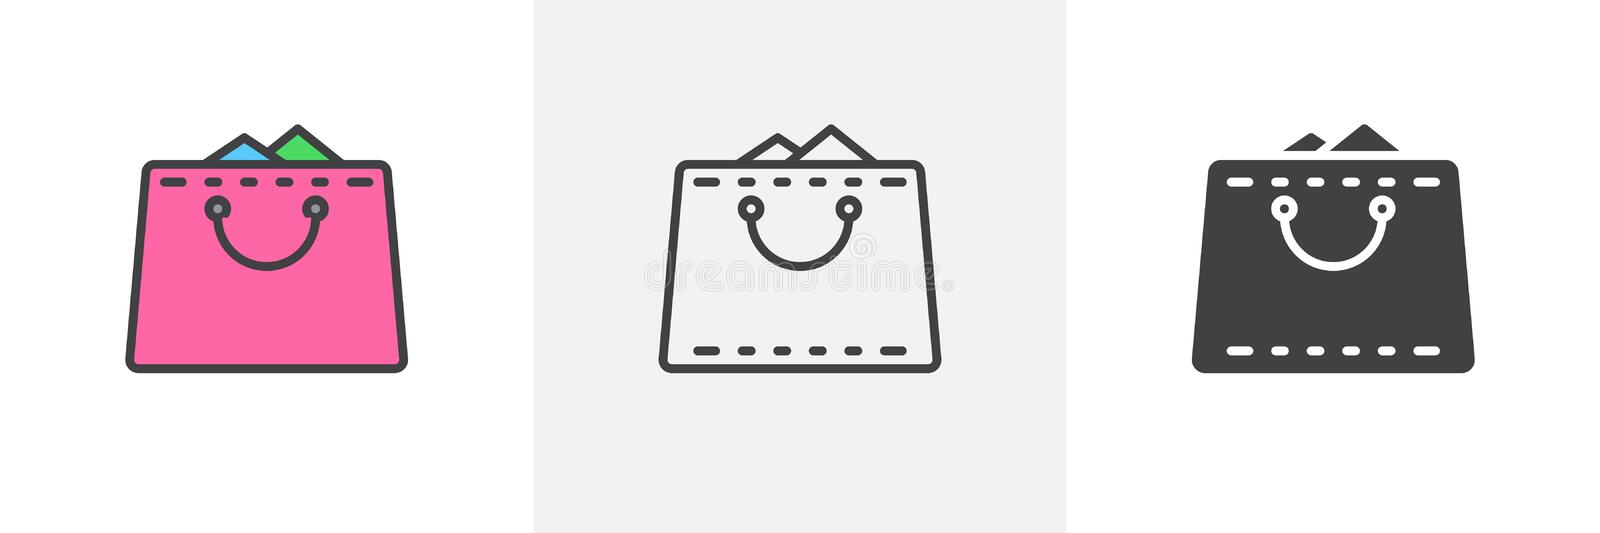 Shopping bag full icon stock illustration